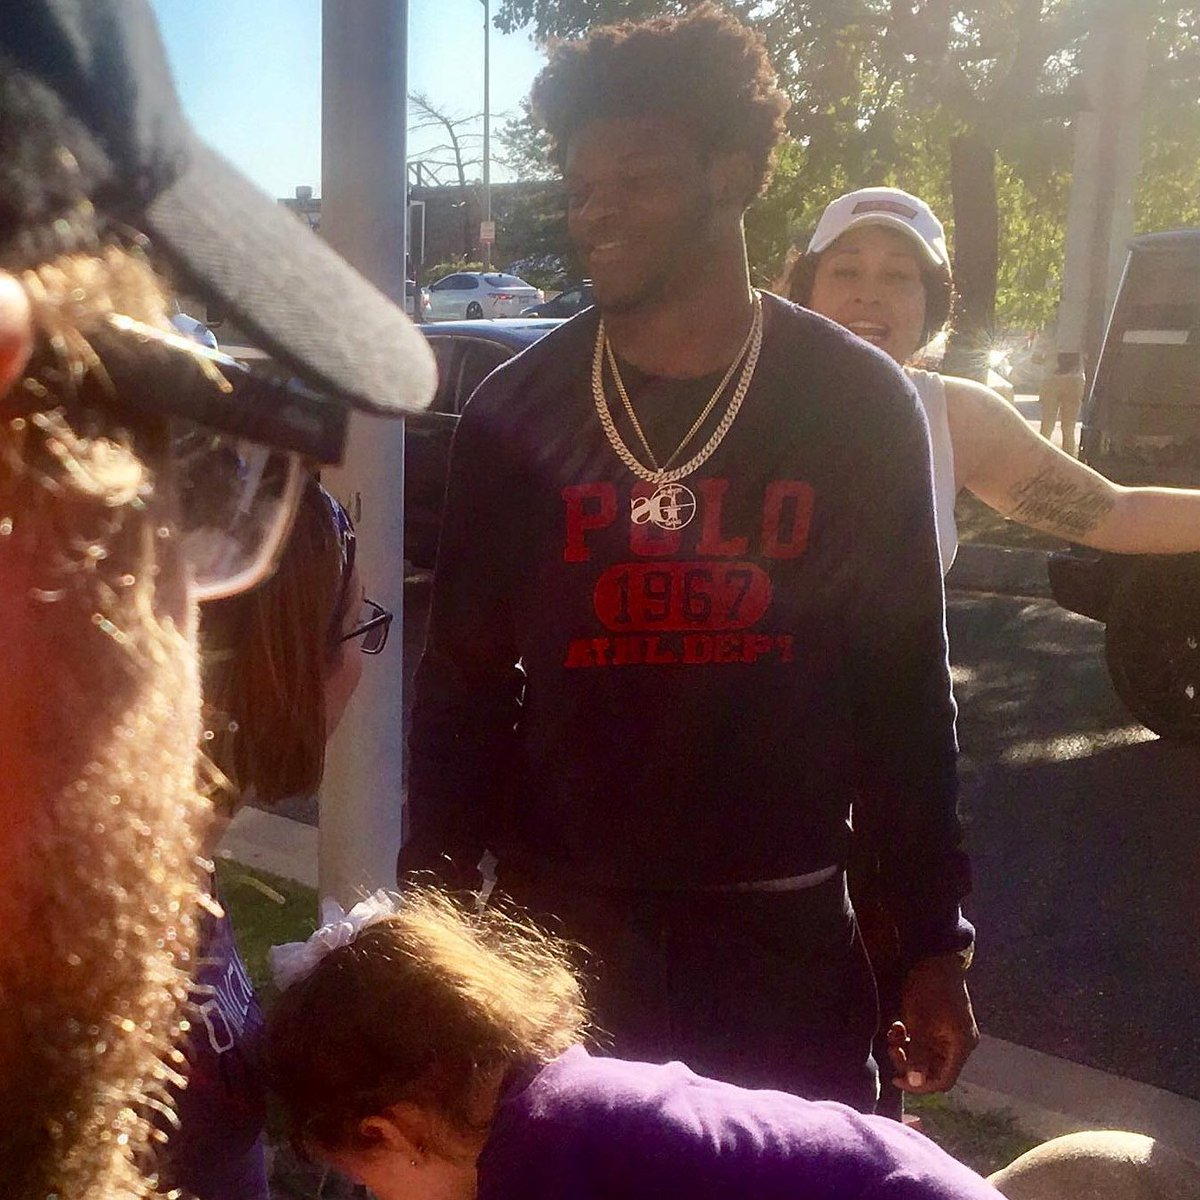 Some fans from Kentucky spotted Lamar in traffic after Baltimore beat the Cardinals on Sunday.  The QB pulled over to the side of the road and signed autographs for the whole group ✊ @brgridiron  (via @Ravens) https://t.co/M2FF0exT5d